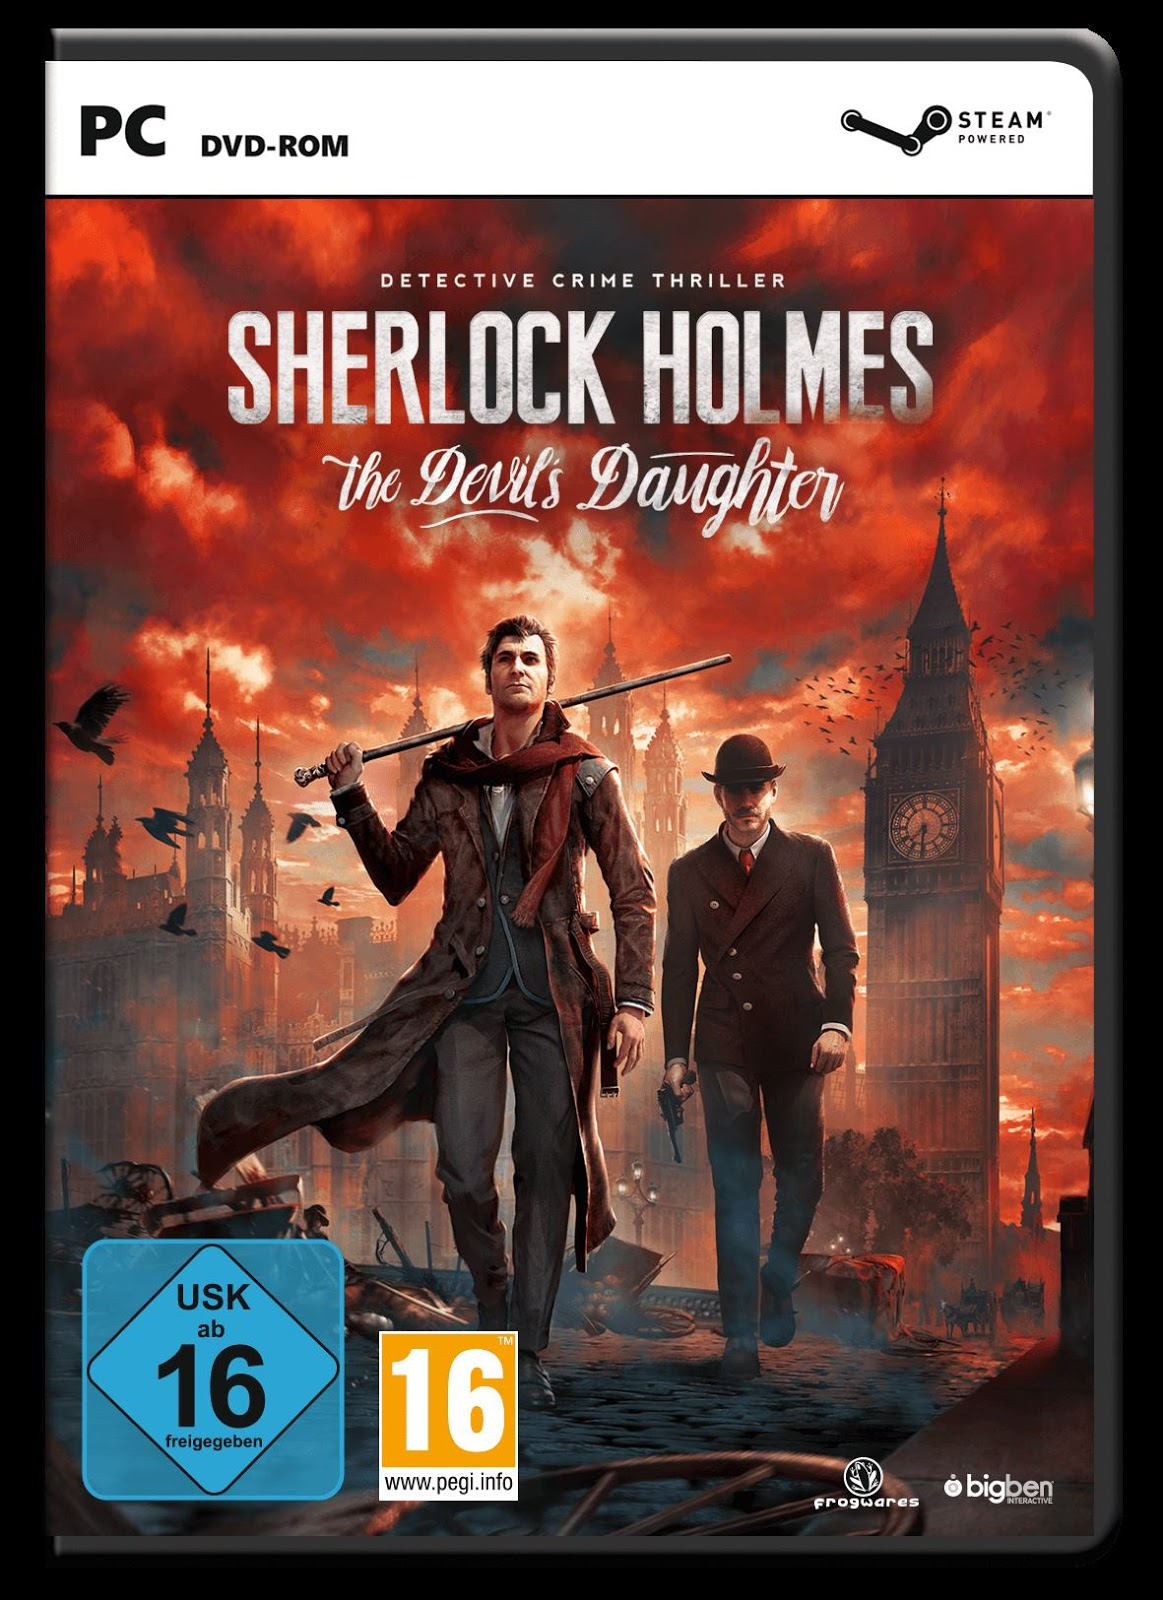 Sherlock Holmes: The Devil's Daughter (Region Free) PC PS4 PC Xbox360 PS3 Wii Nintendo Mac Linux